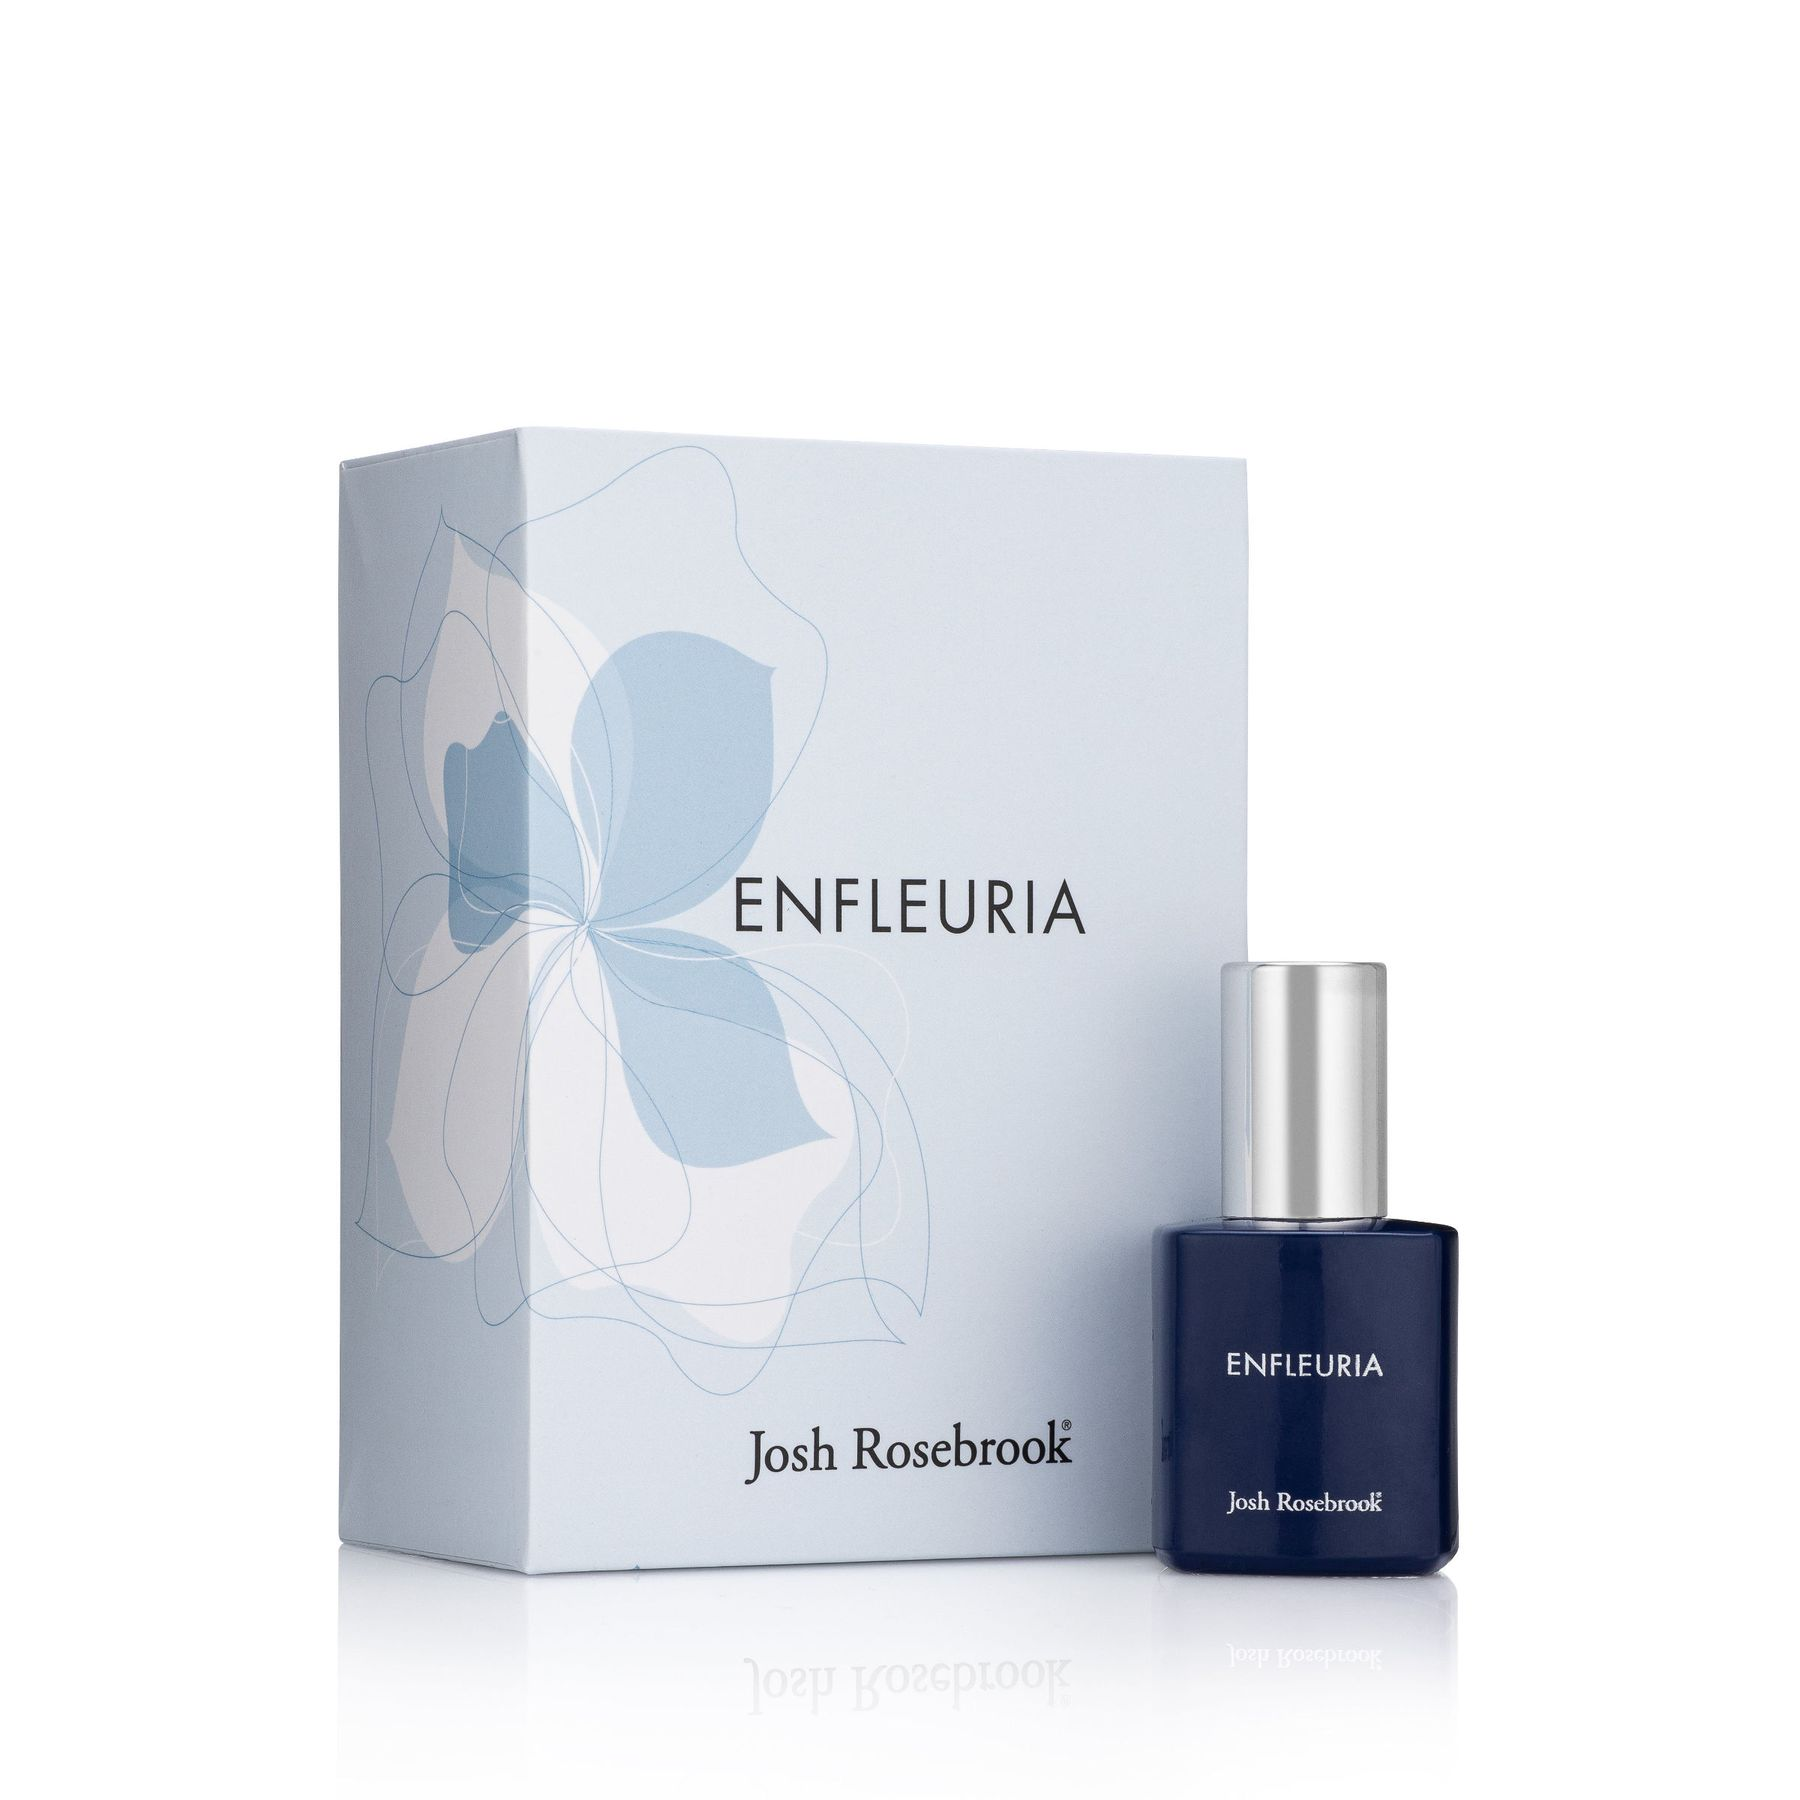 Enfleuria Fragrance Oil Parfum Josh Rosebrook - Genuine Selection